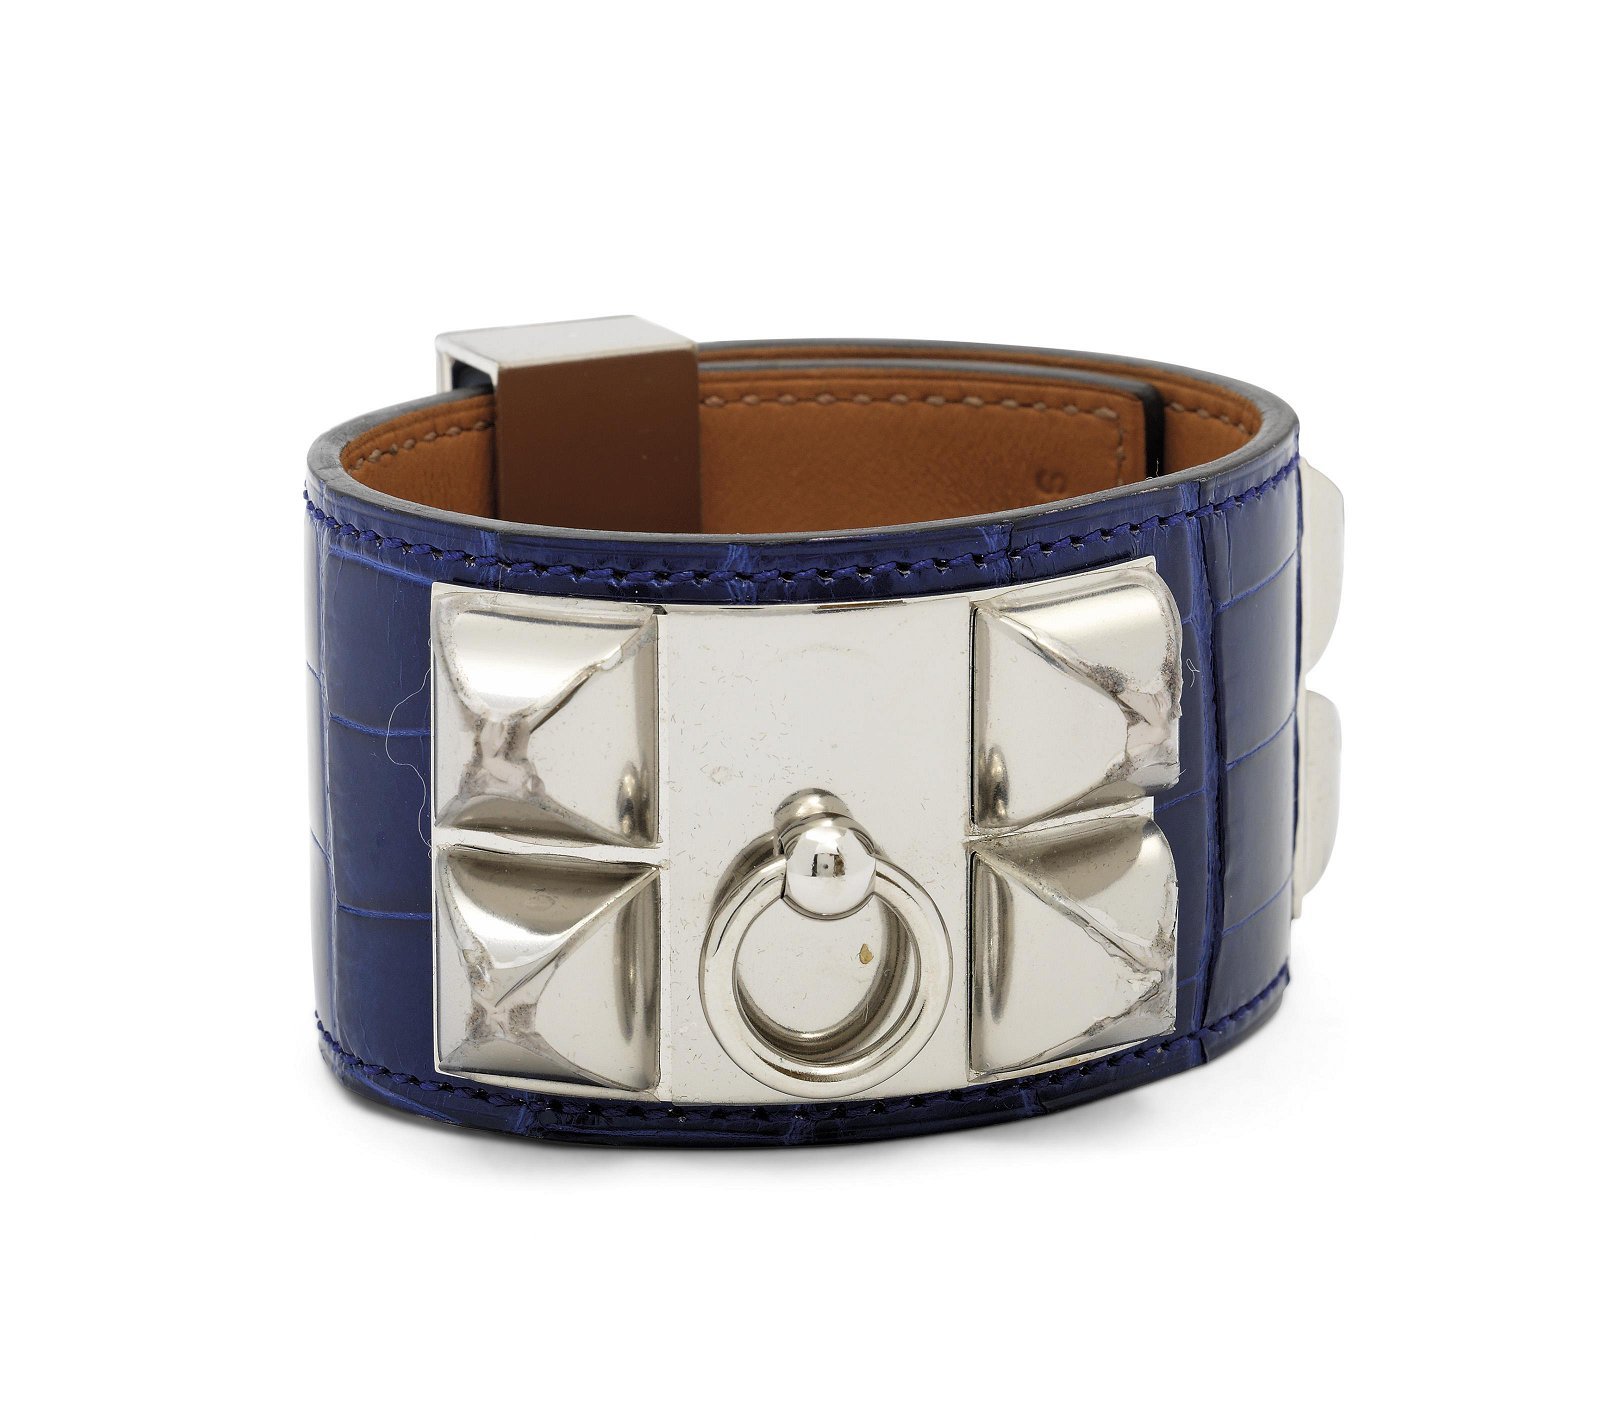 A SHINY BLEU ÉLECTRIQUE ALLIGATOR CDC CUFF WITH